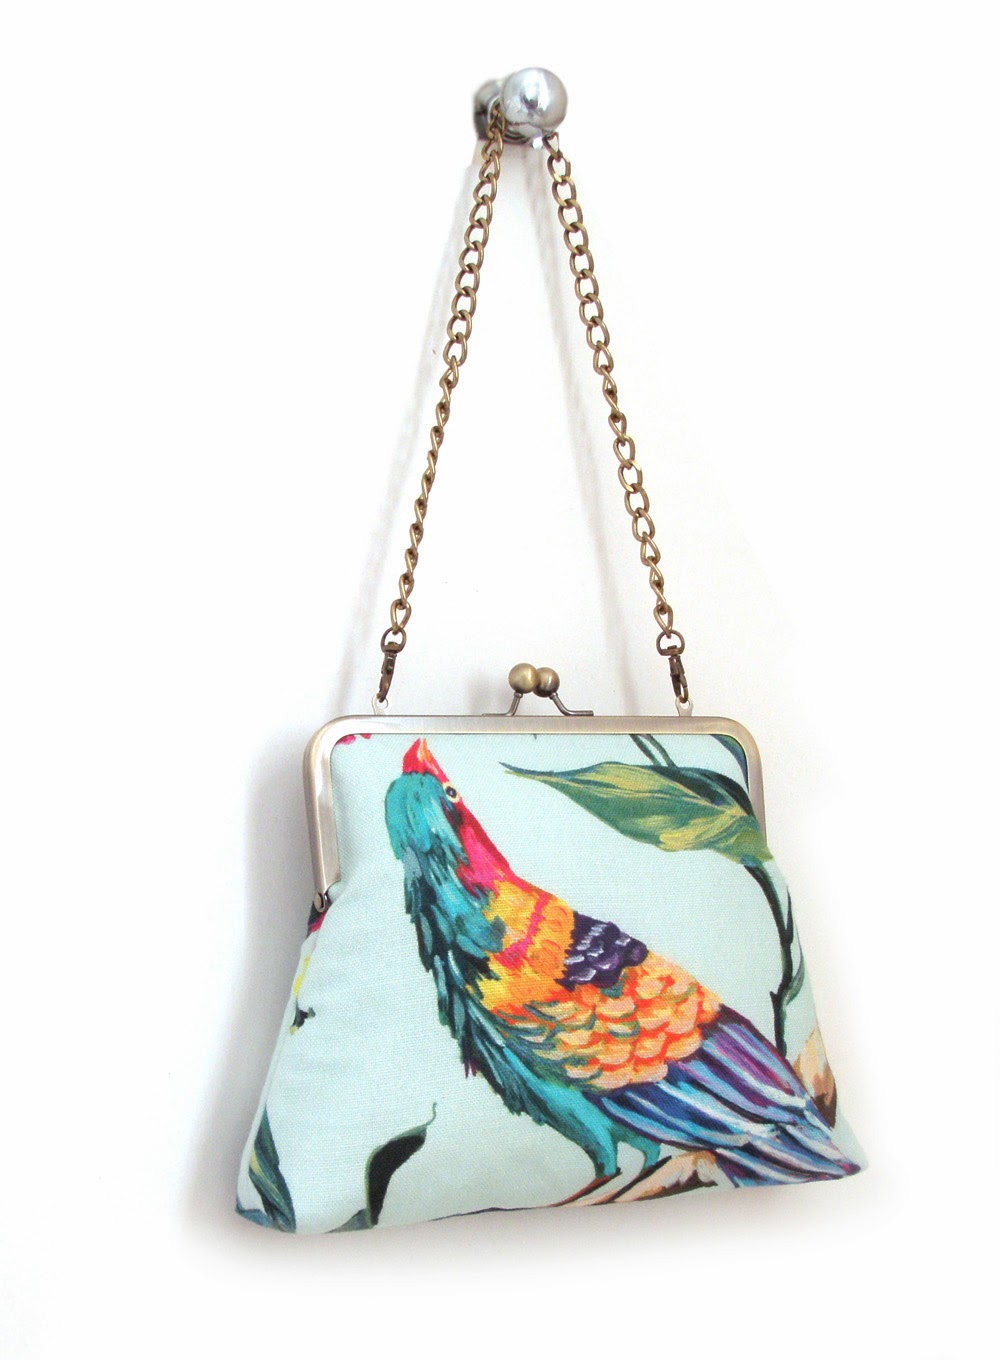 95f75bfb7f ... new shoulder larger clutch bags. Featuring a jewel-like print of  tropical birds on both sides